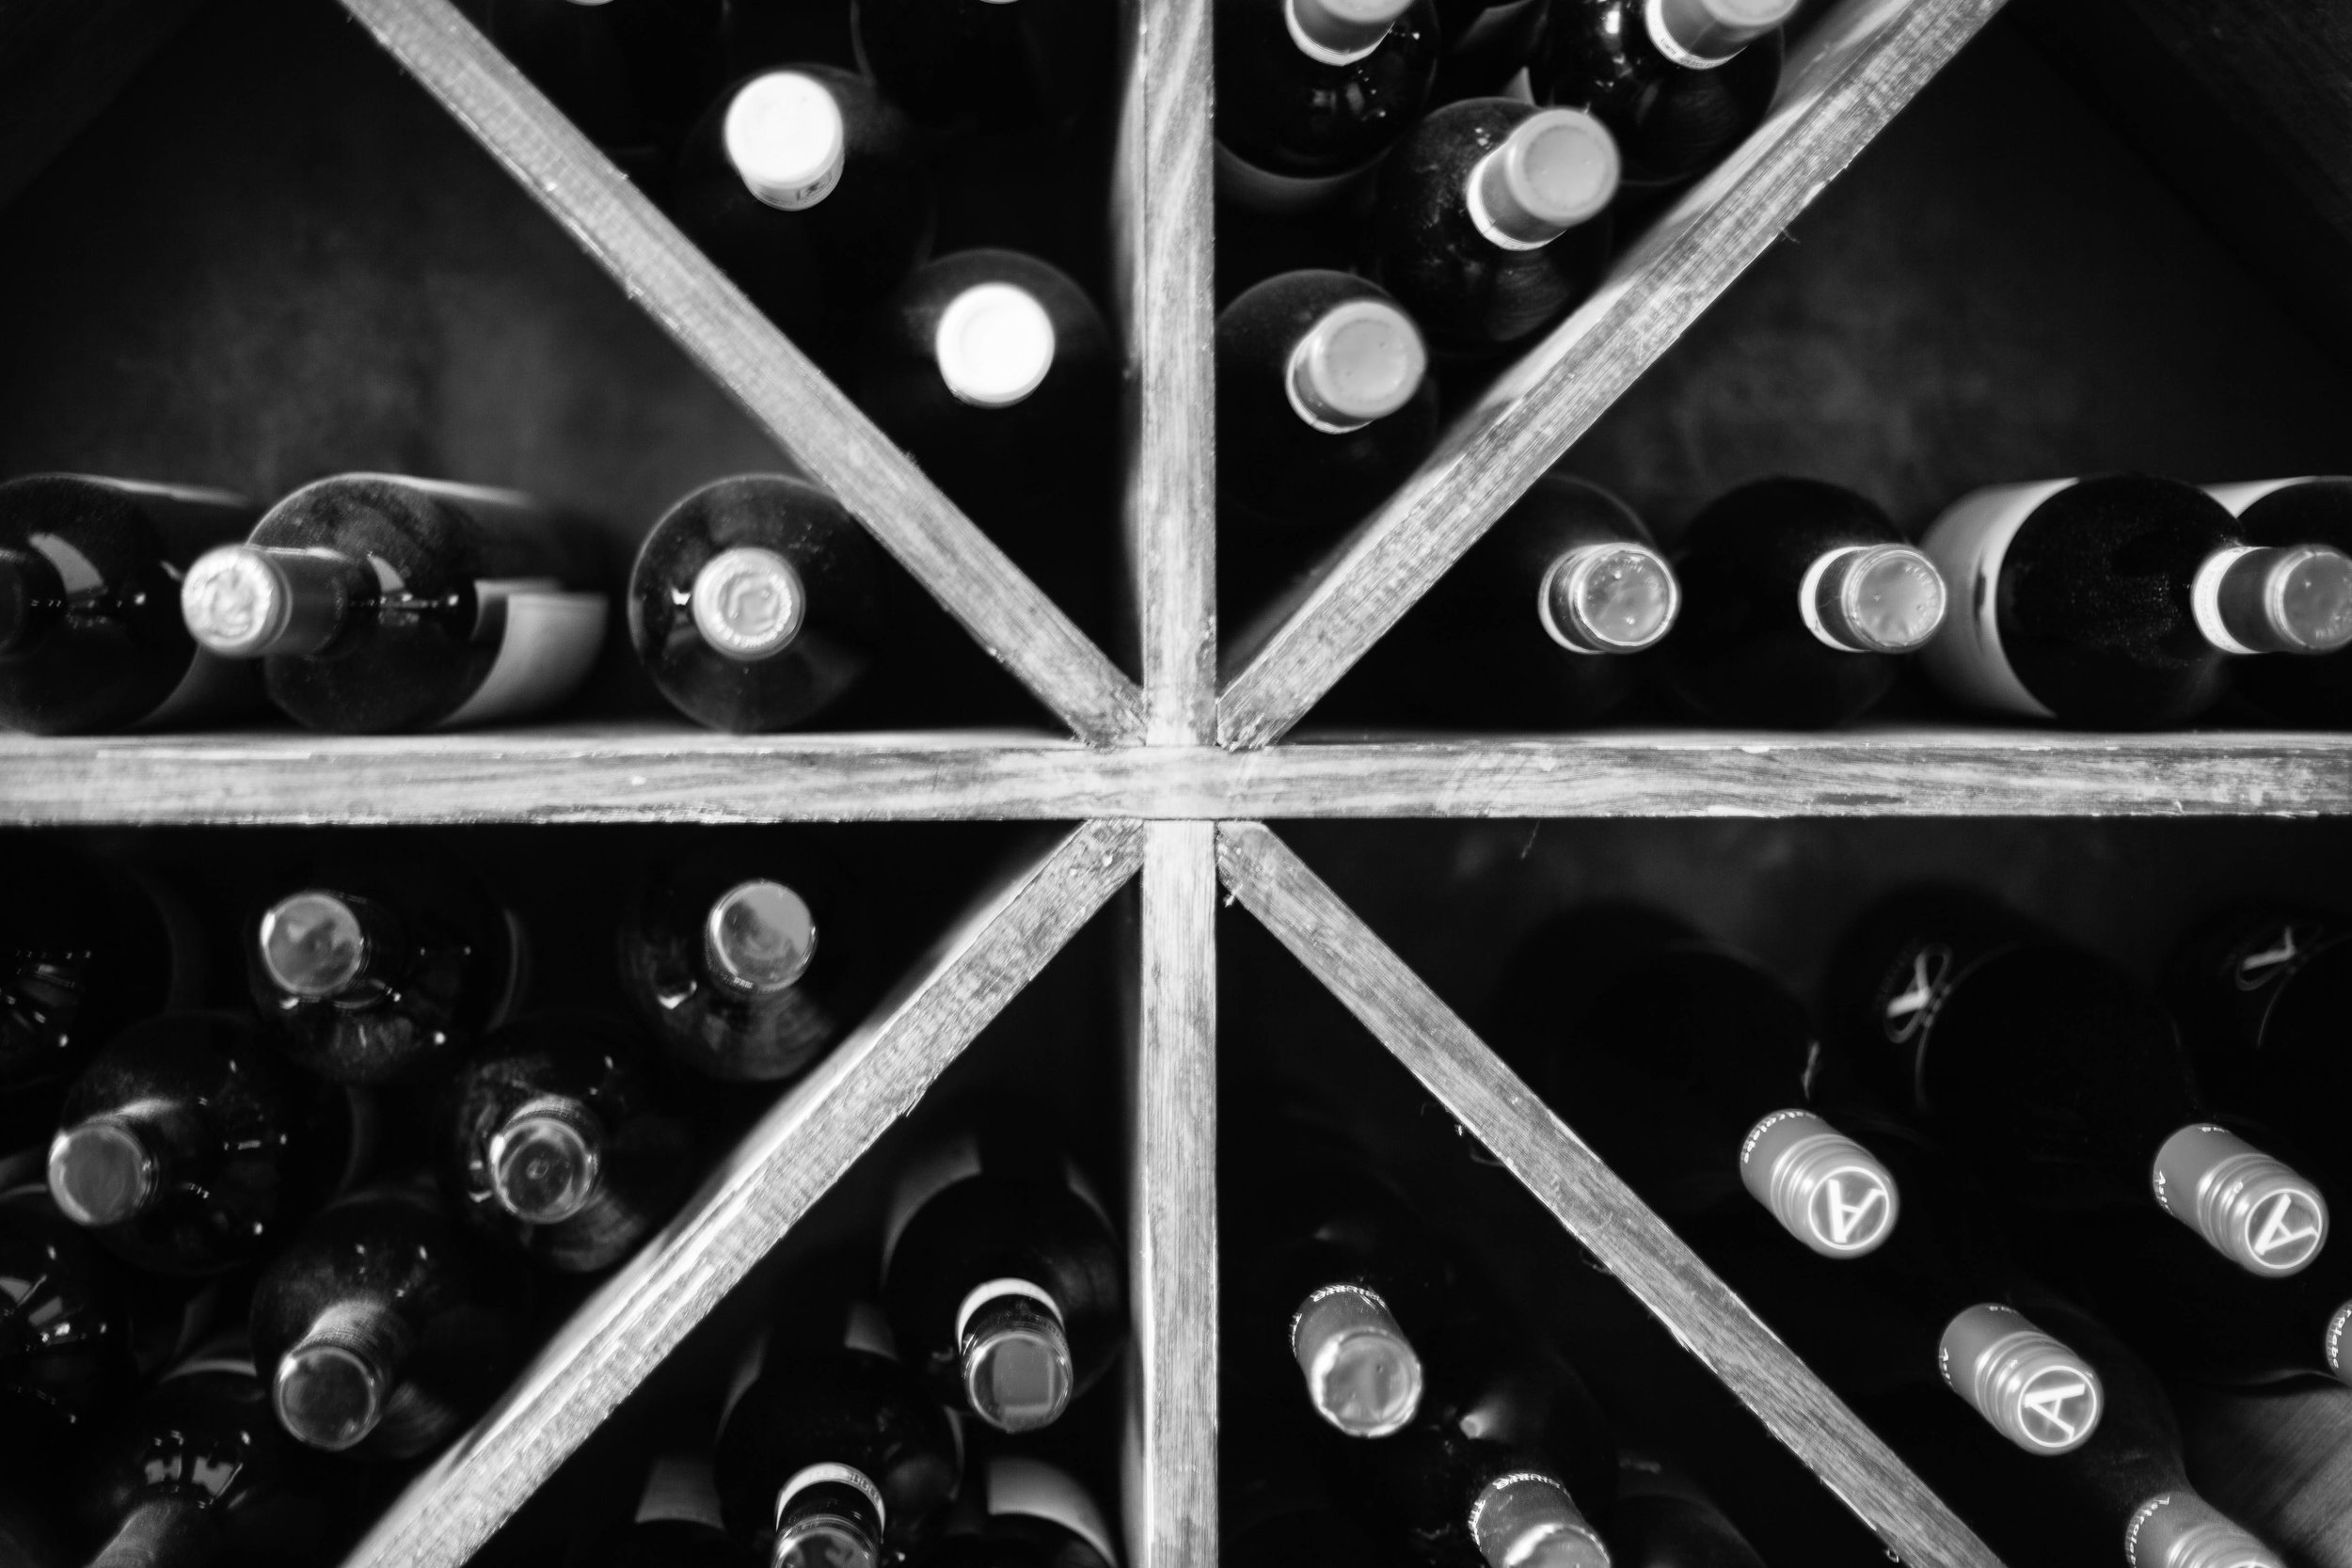 - The following list of wines has been chosen and organised with great care for your maximum enjoyment. The wines were individually chosen for their excellence in quality and value. We hope that you enjoy looking through this list as much as we enjoyed preparing it for you.